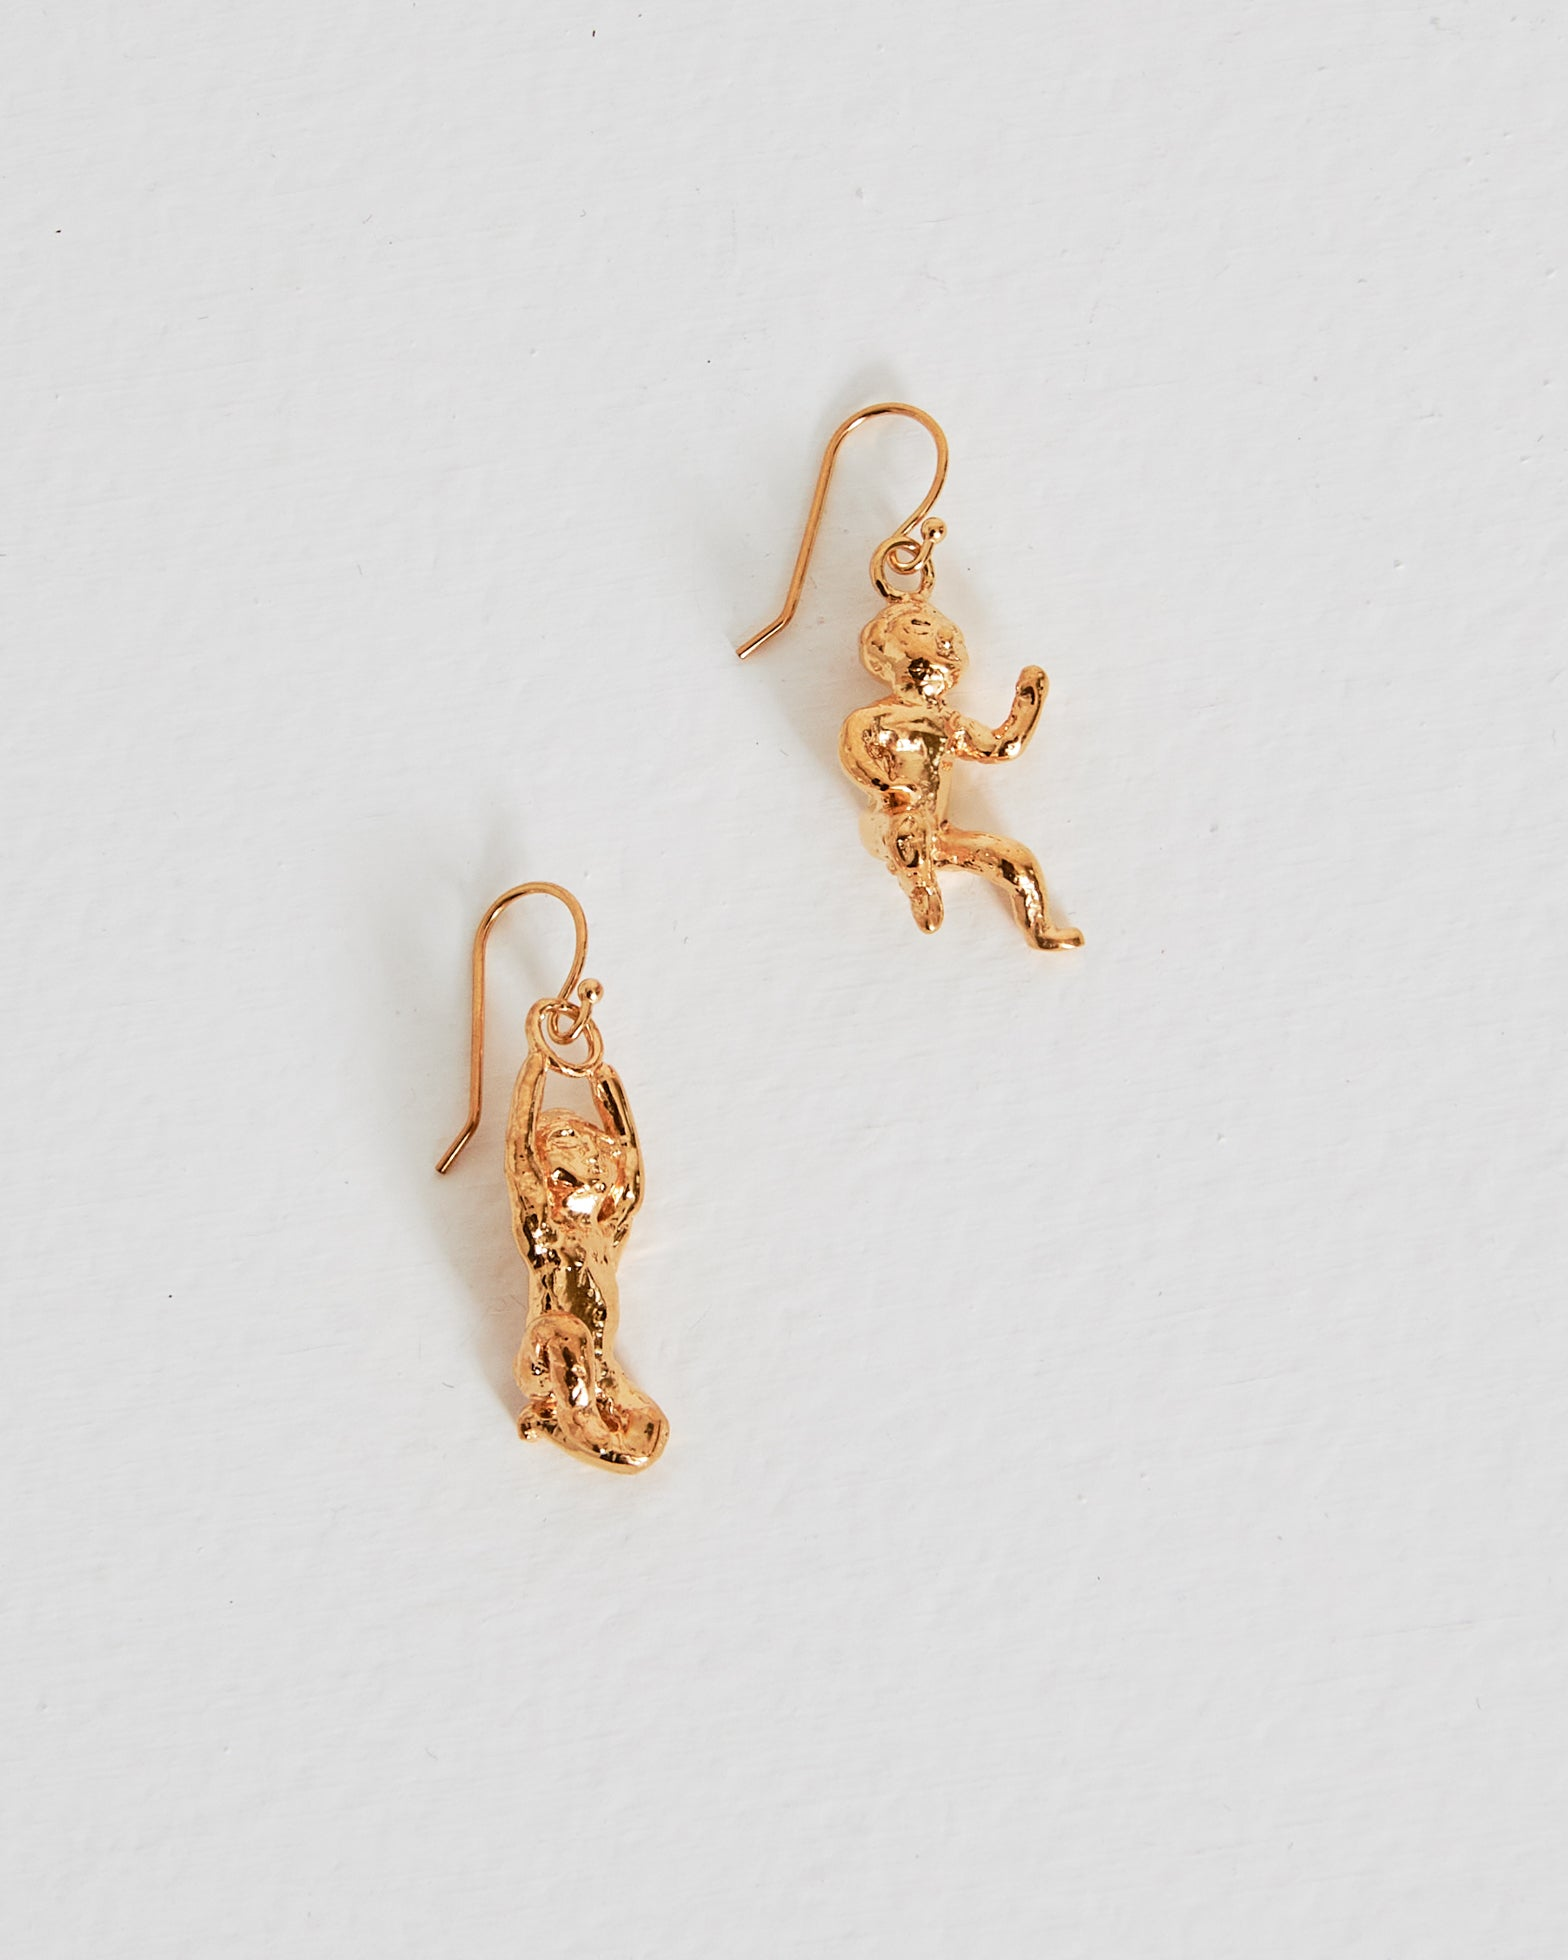 Remus and Romulus Earrings in 18k Gold Vermeil